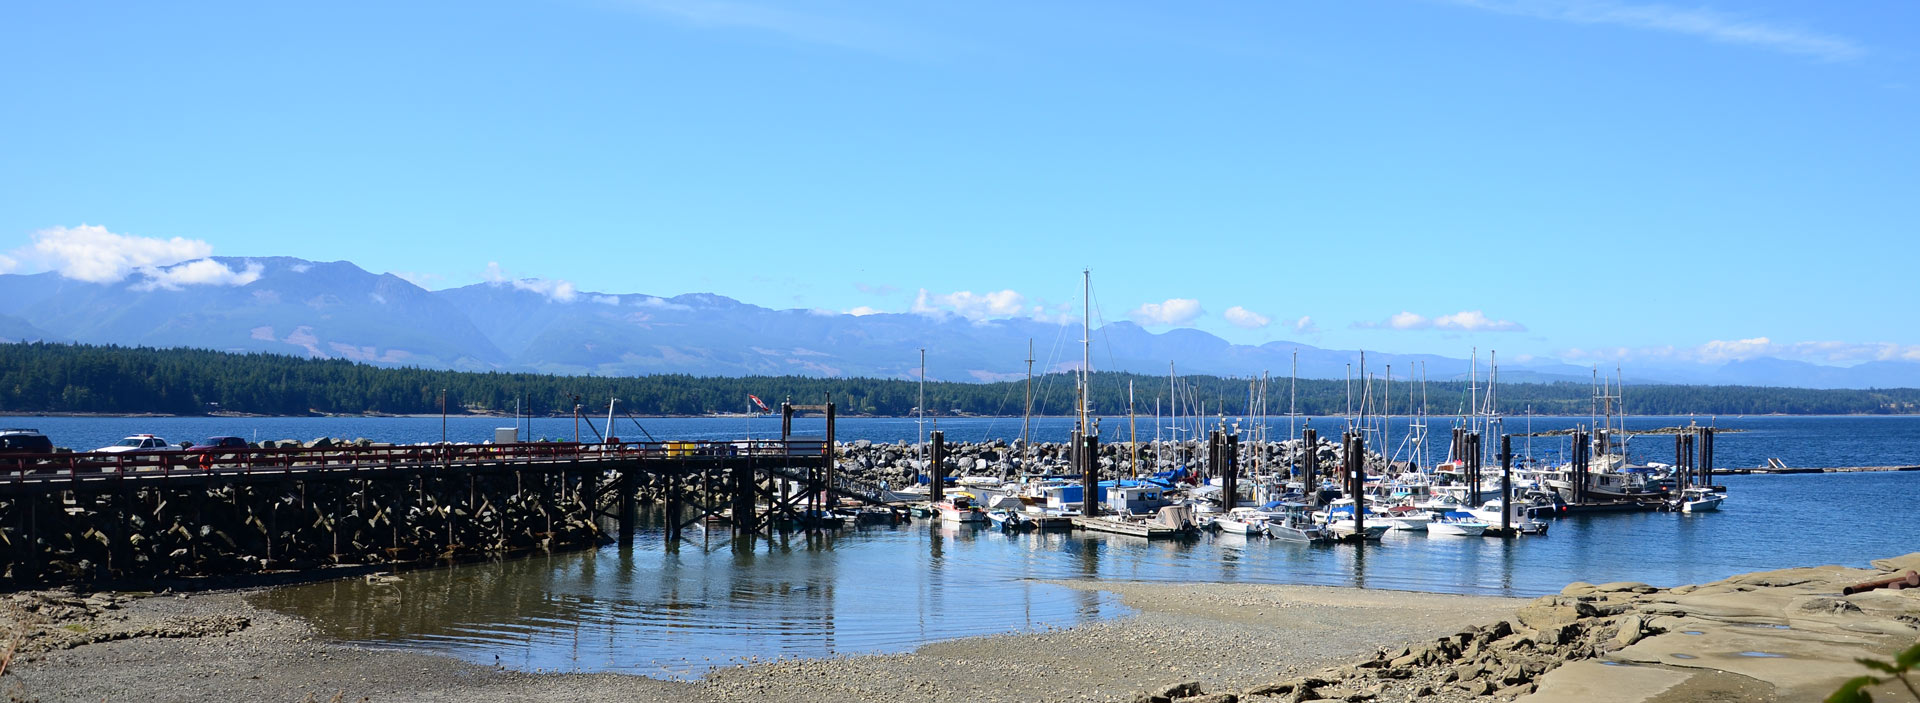 small marina with sailboats in a bay of ocean water, mountains in the distance